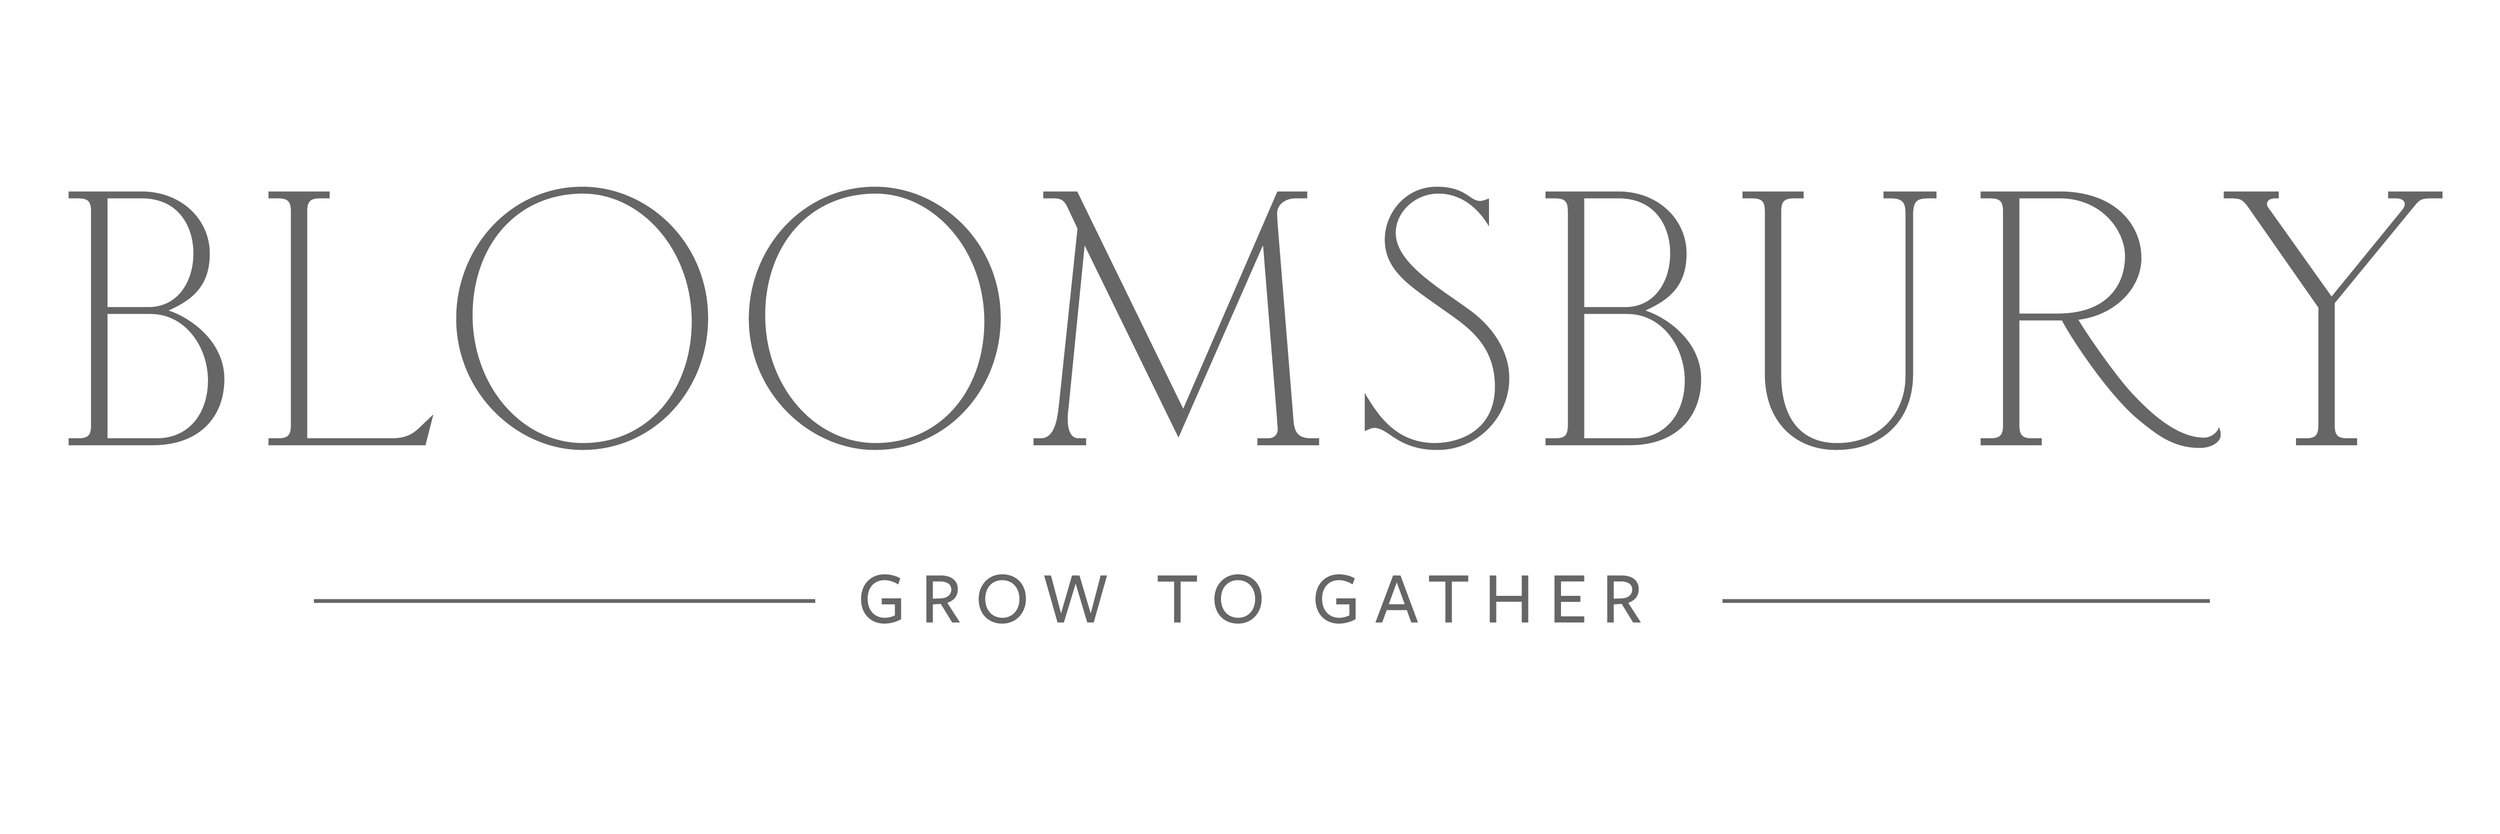 Bloomsbury_Logo_GrowtoGather.jpg